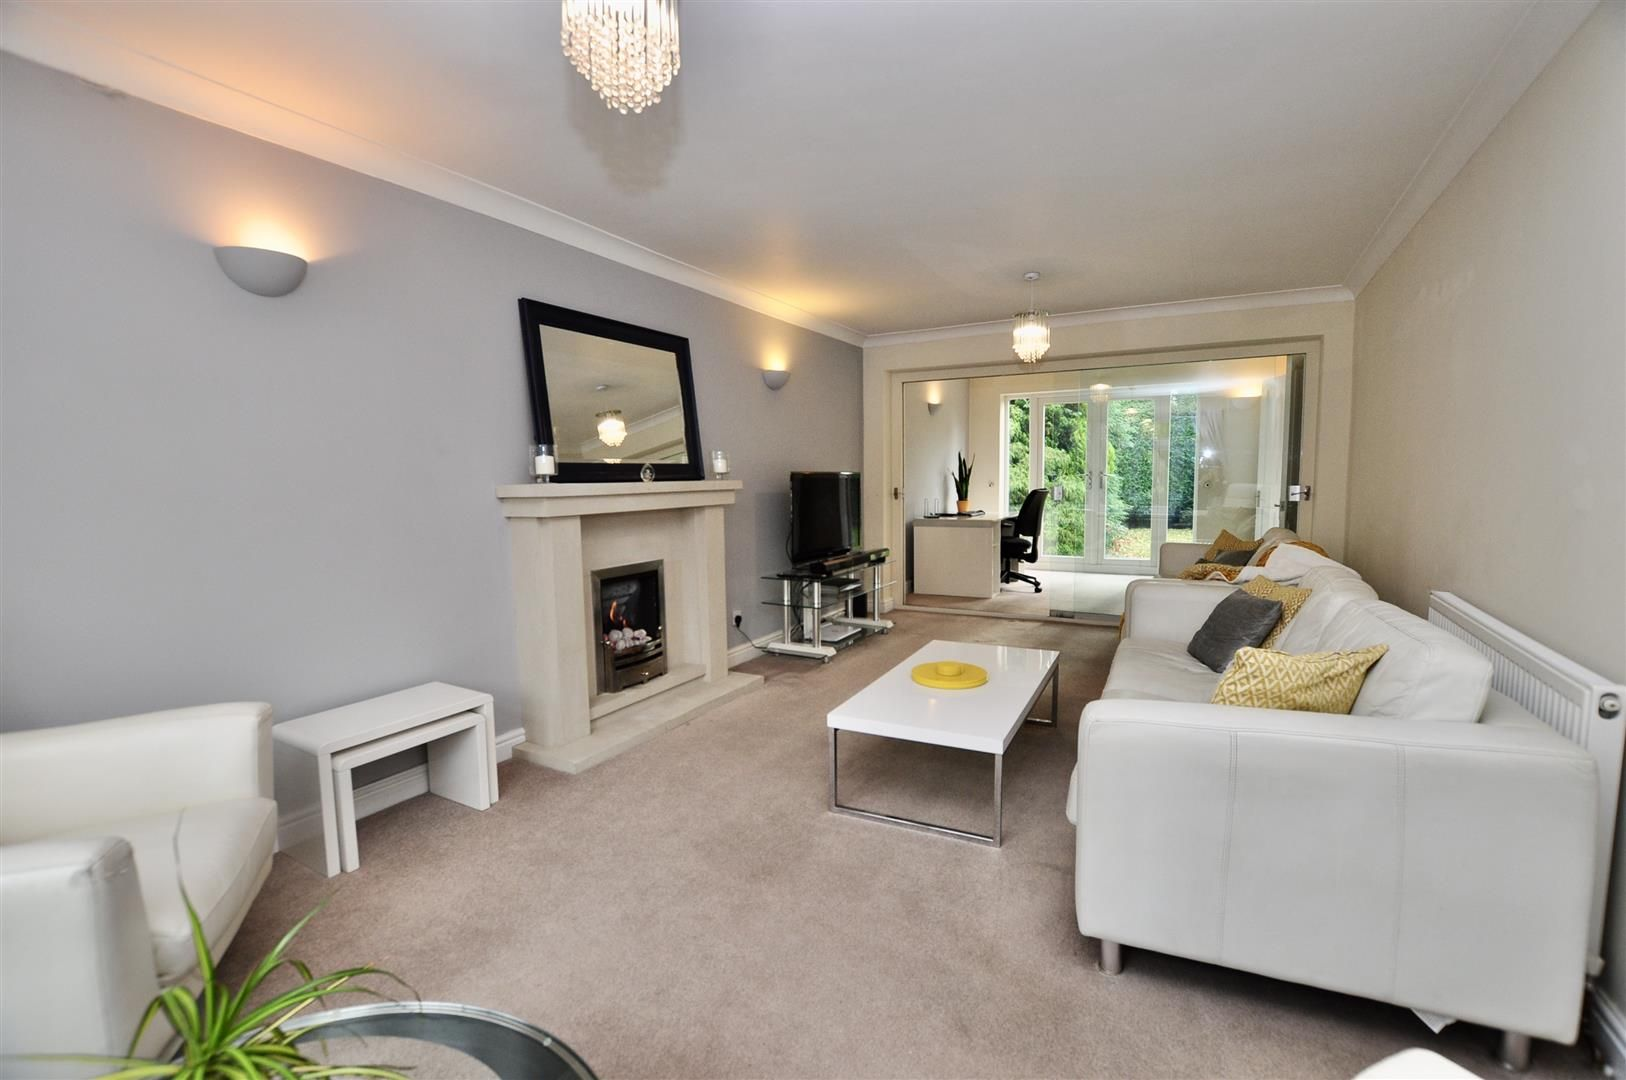 4 bed house for sale in Hagley 15